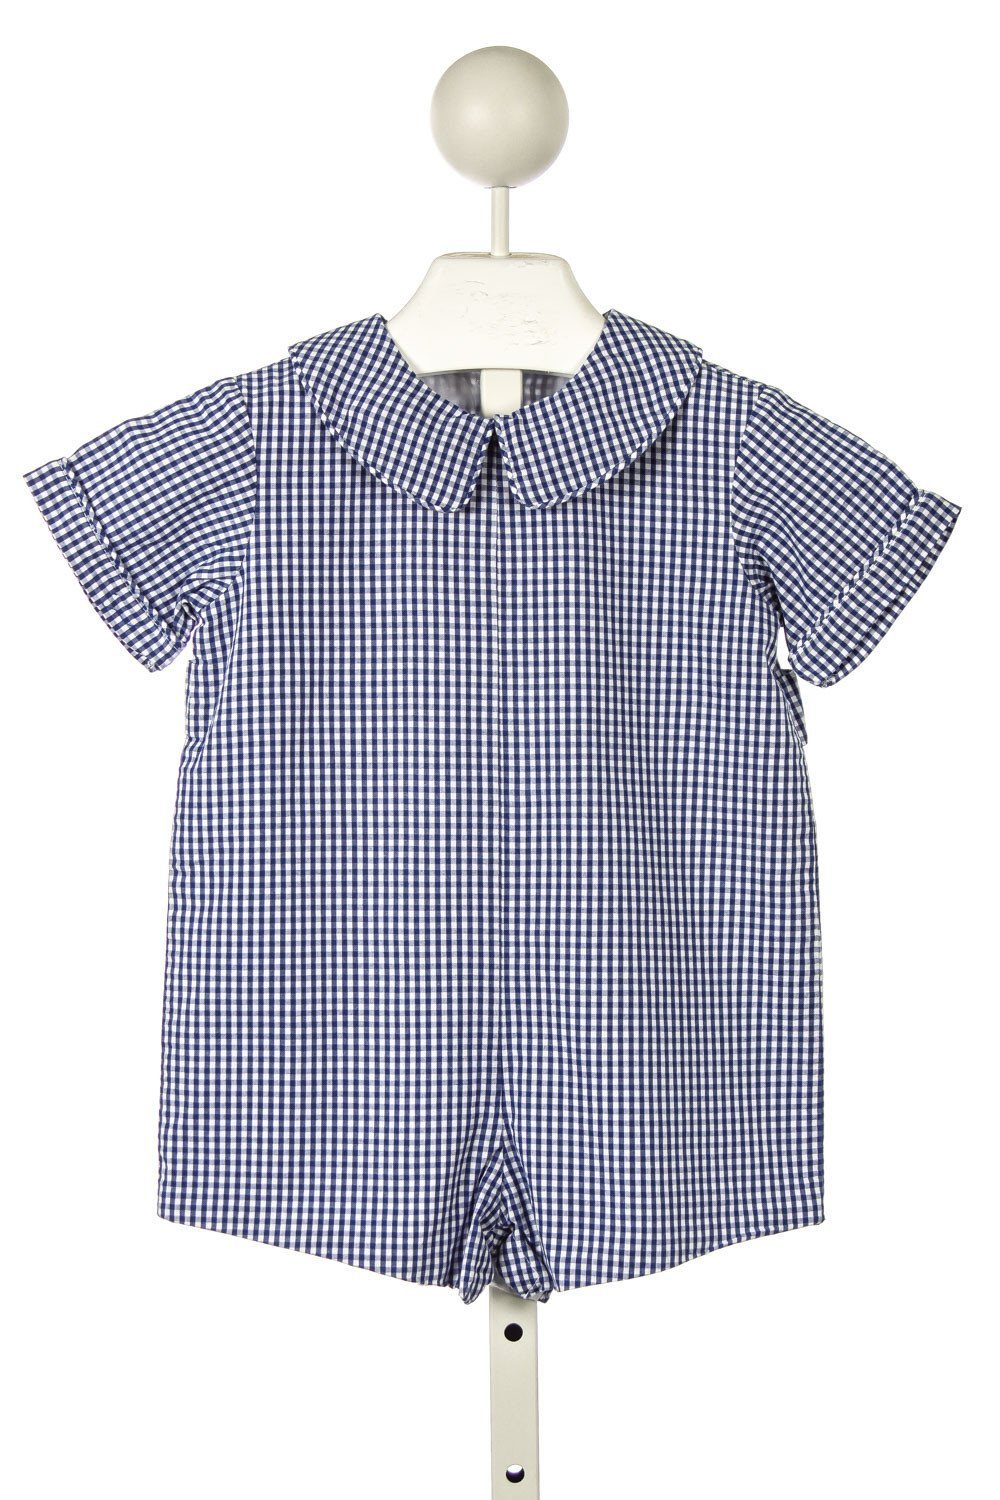 KATE & LIBBY BLUE GINGHAM SHORTALL